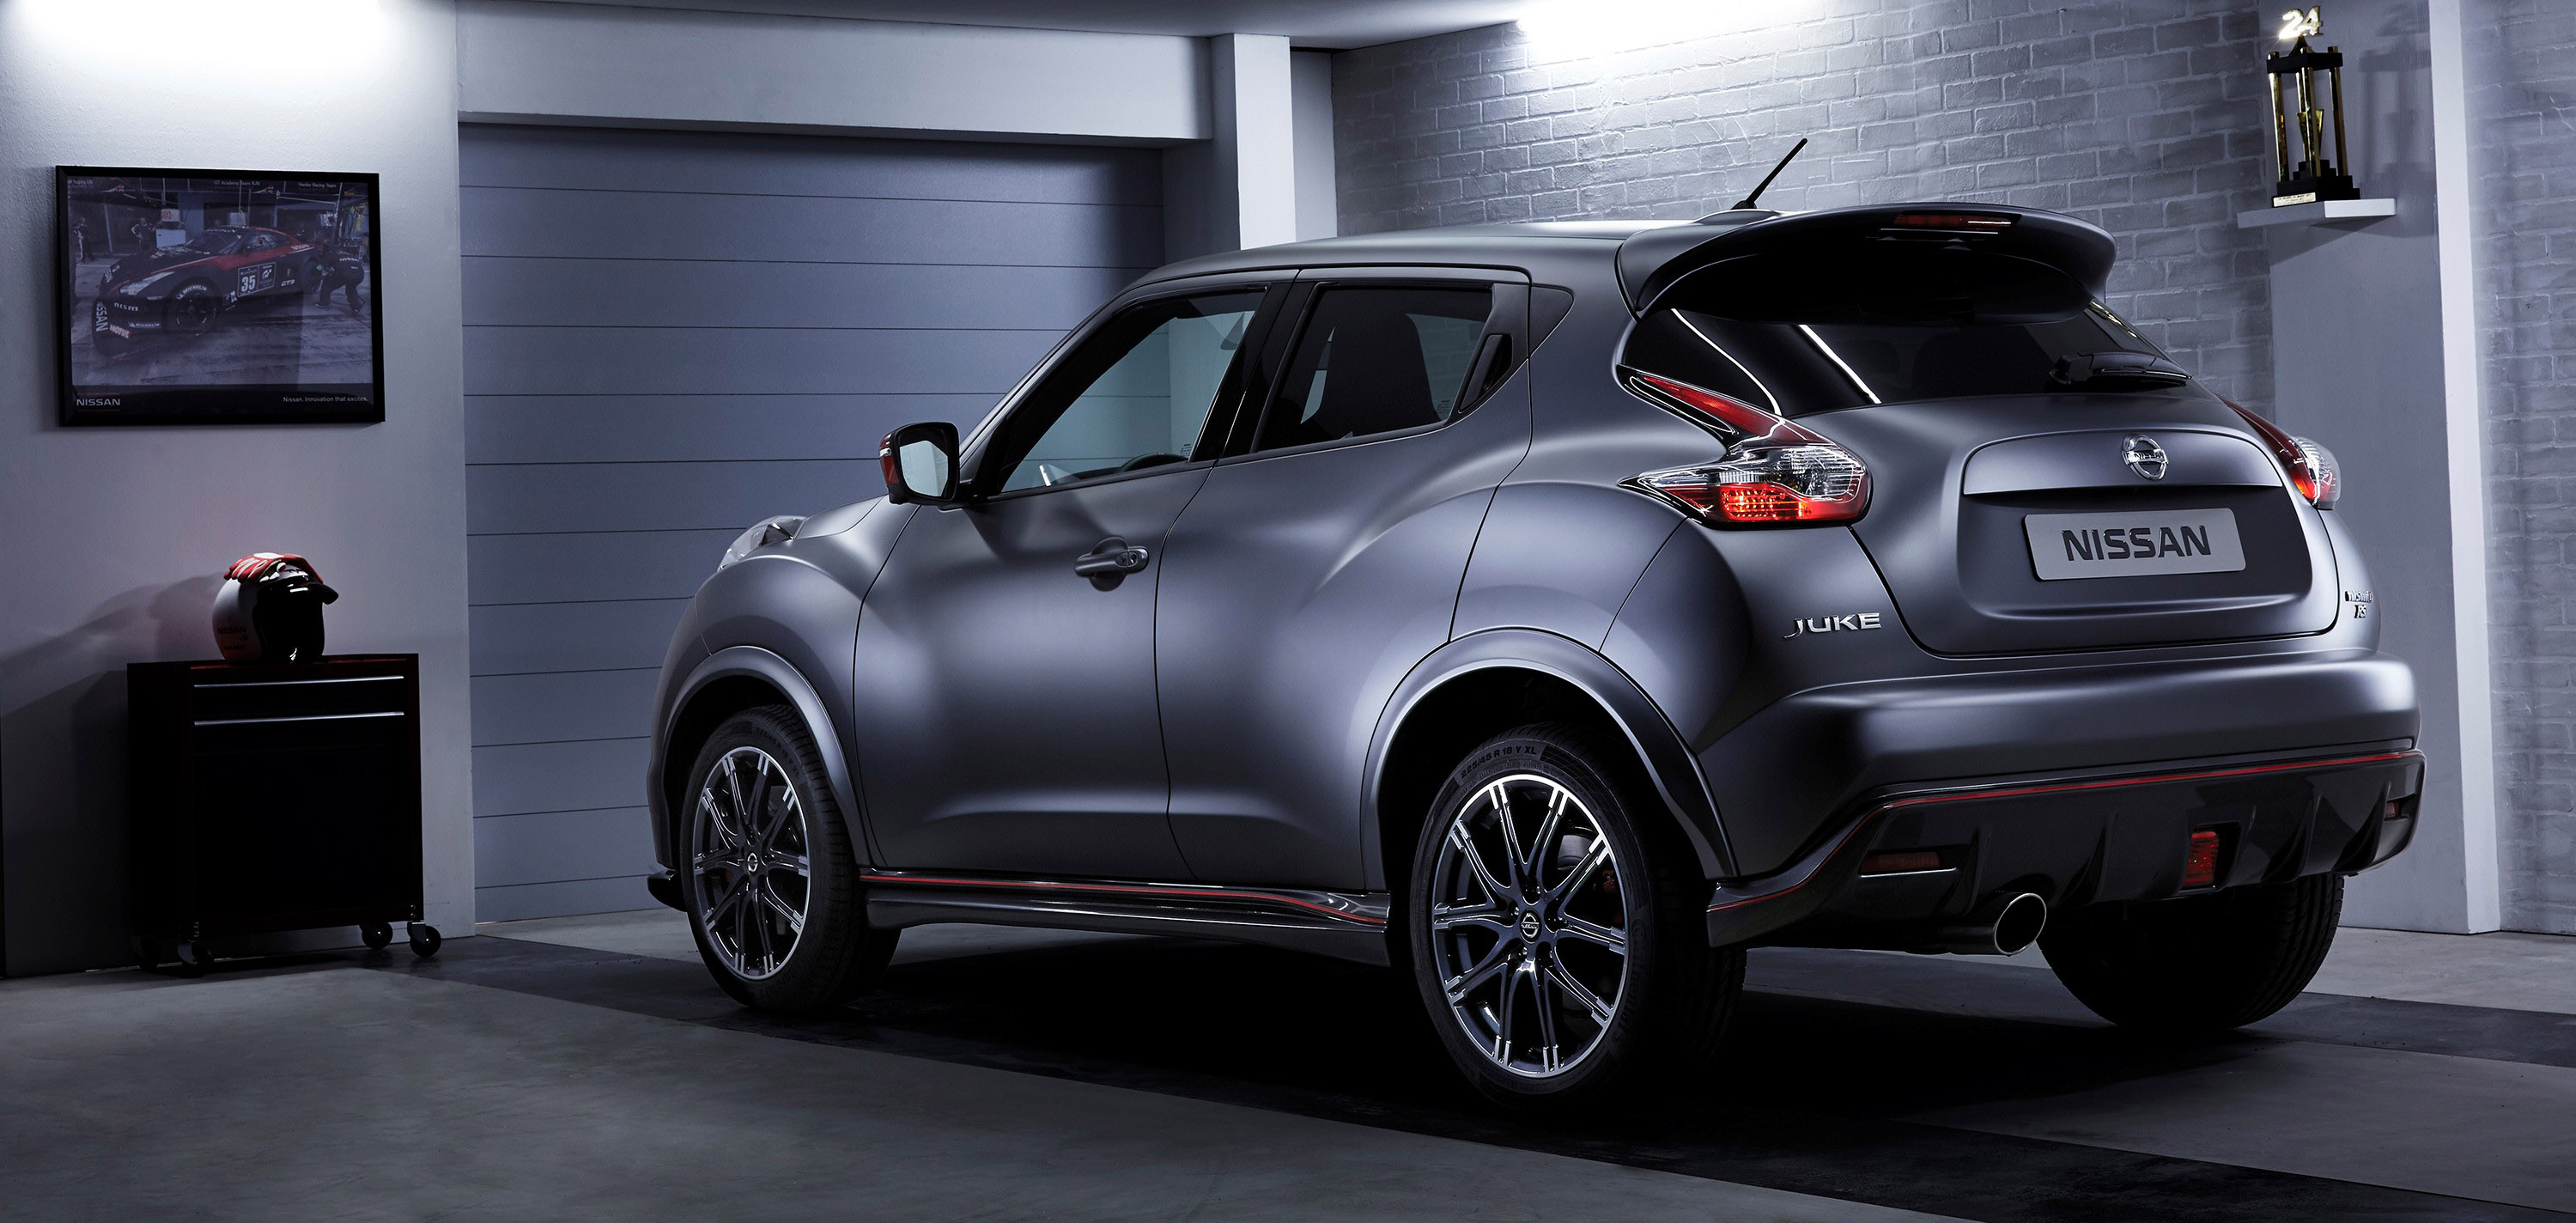 Nissan Juke R >> 2014 Nissan Juke Nismo RS - 218HP and 280Nm